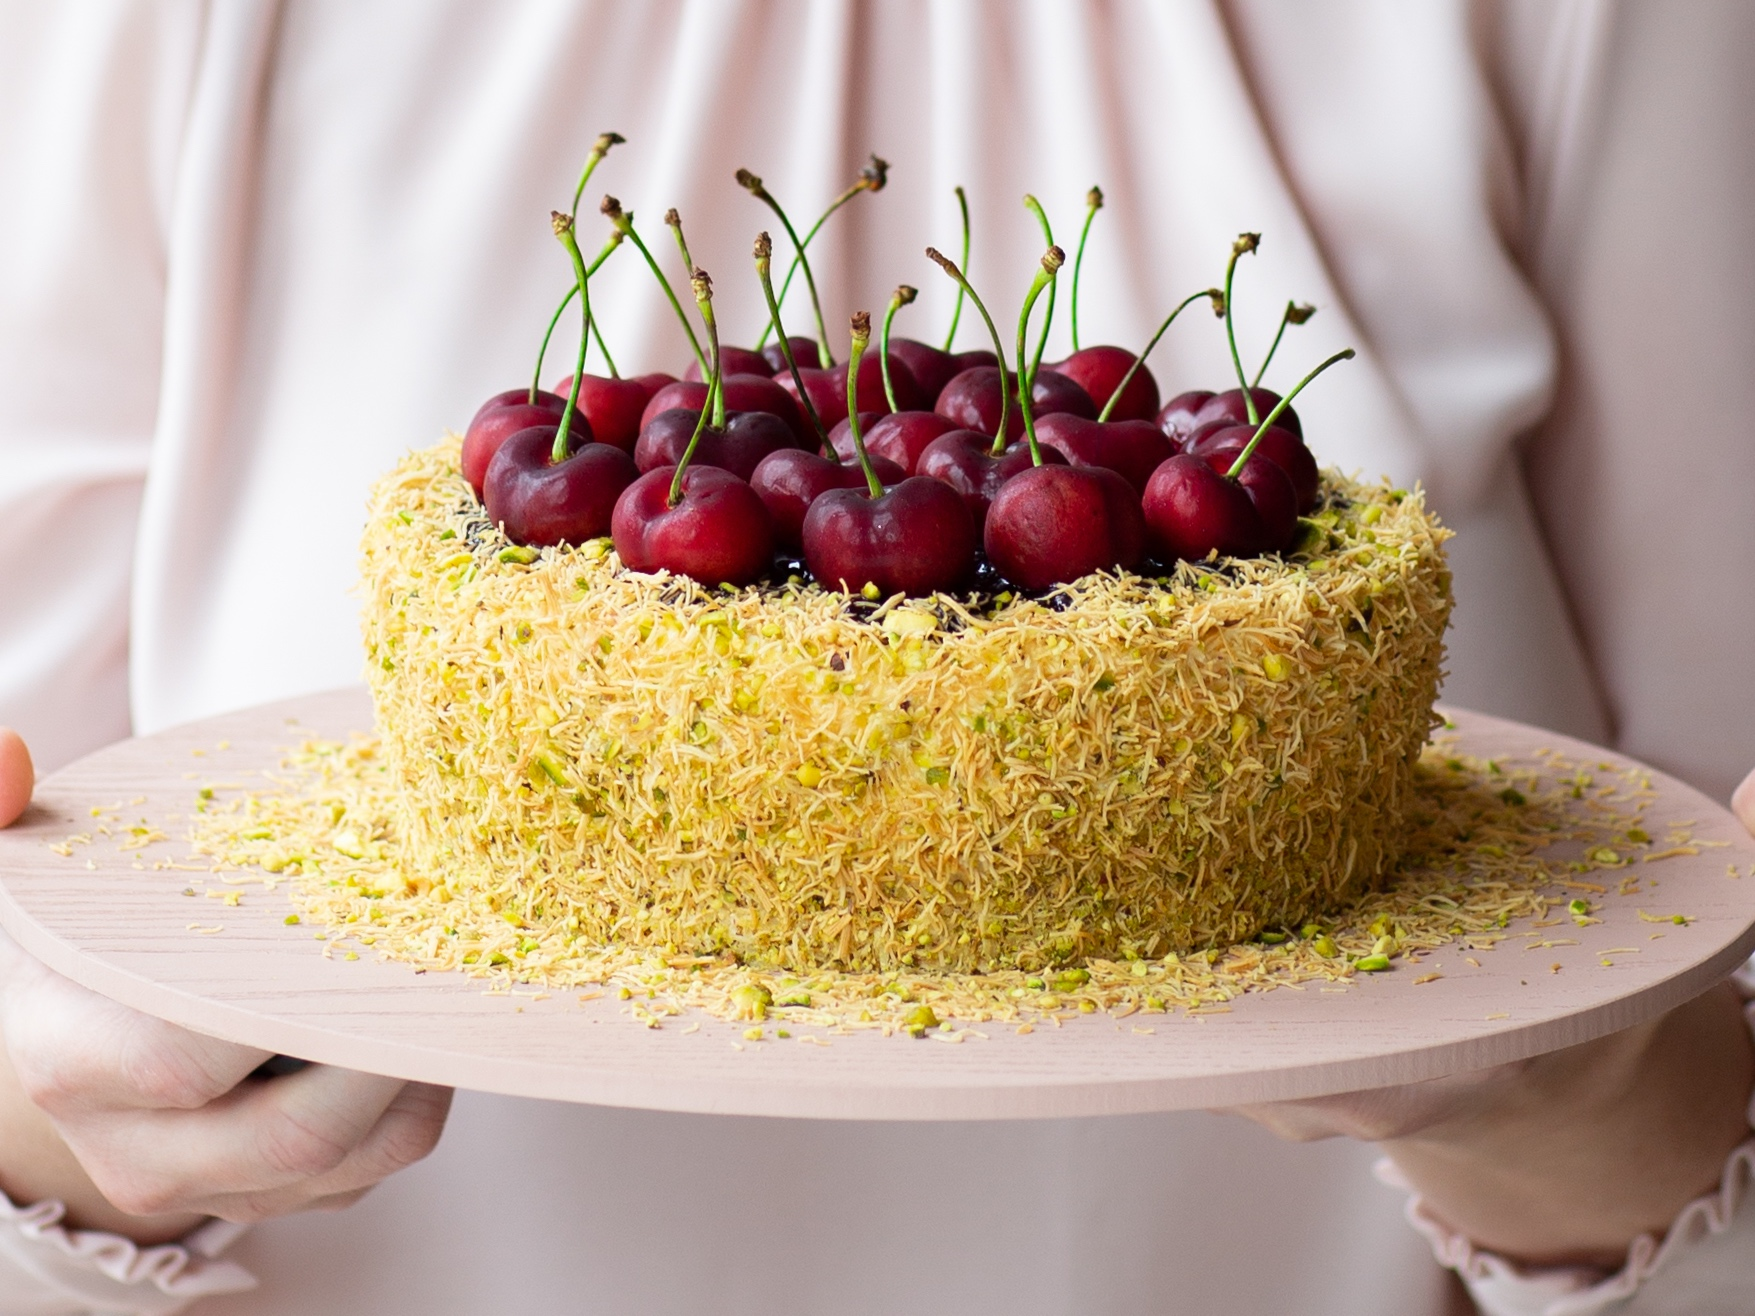 Kataifi Cherry Cheesecake - A winner in our eyes, this cheesecake is an absolute delight. While cherries are out of season, get creative with any other fruit that's in abundance.